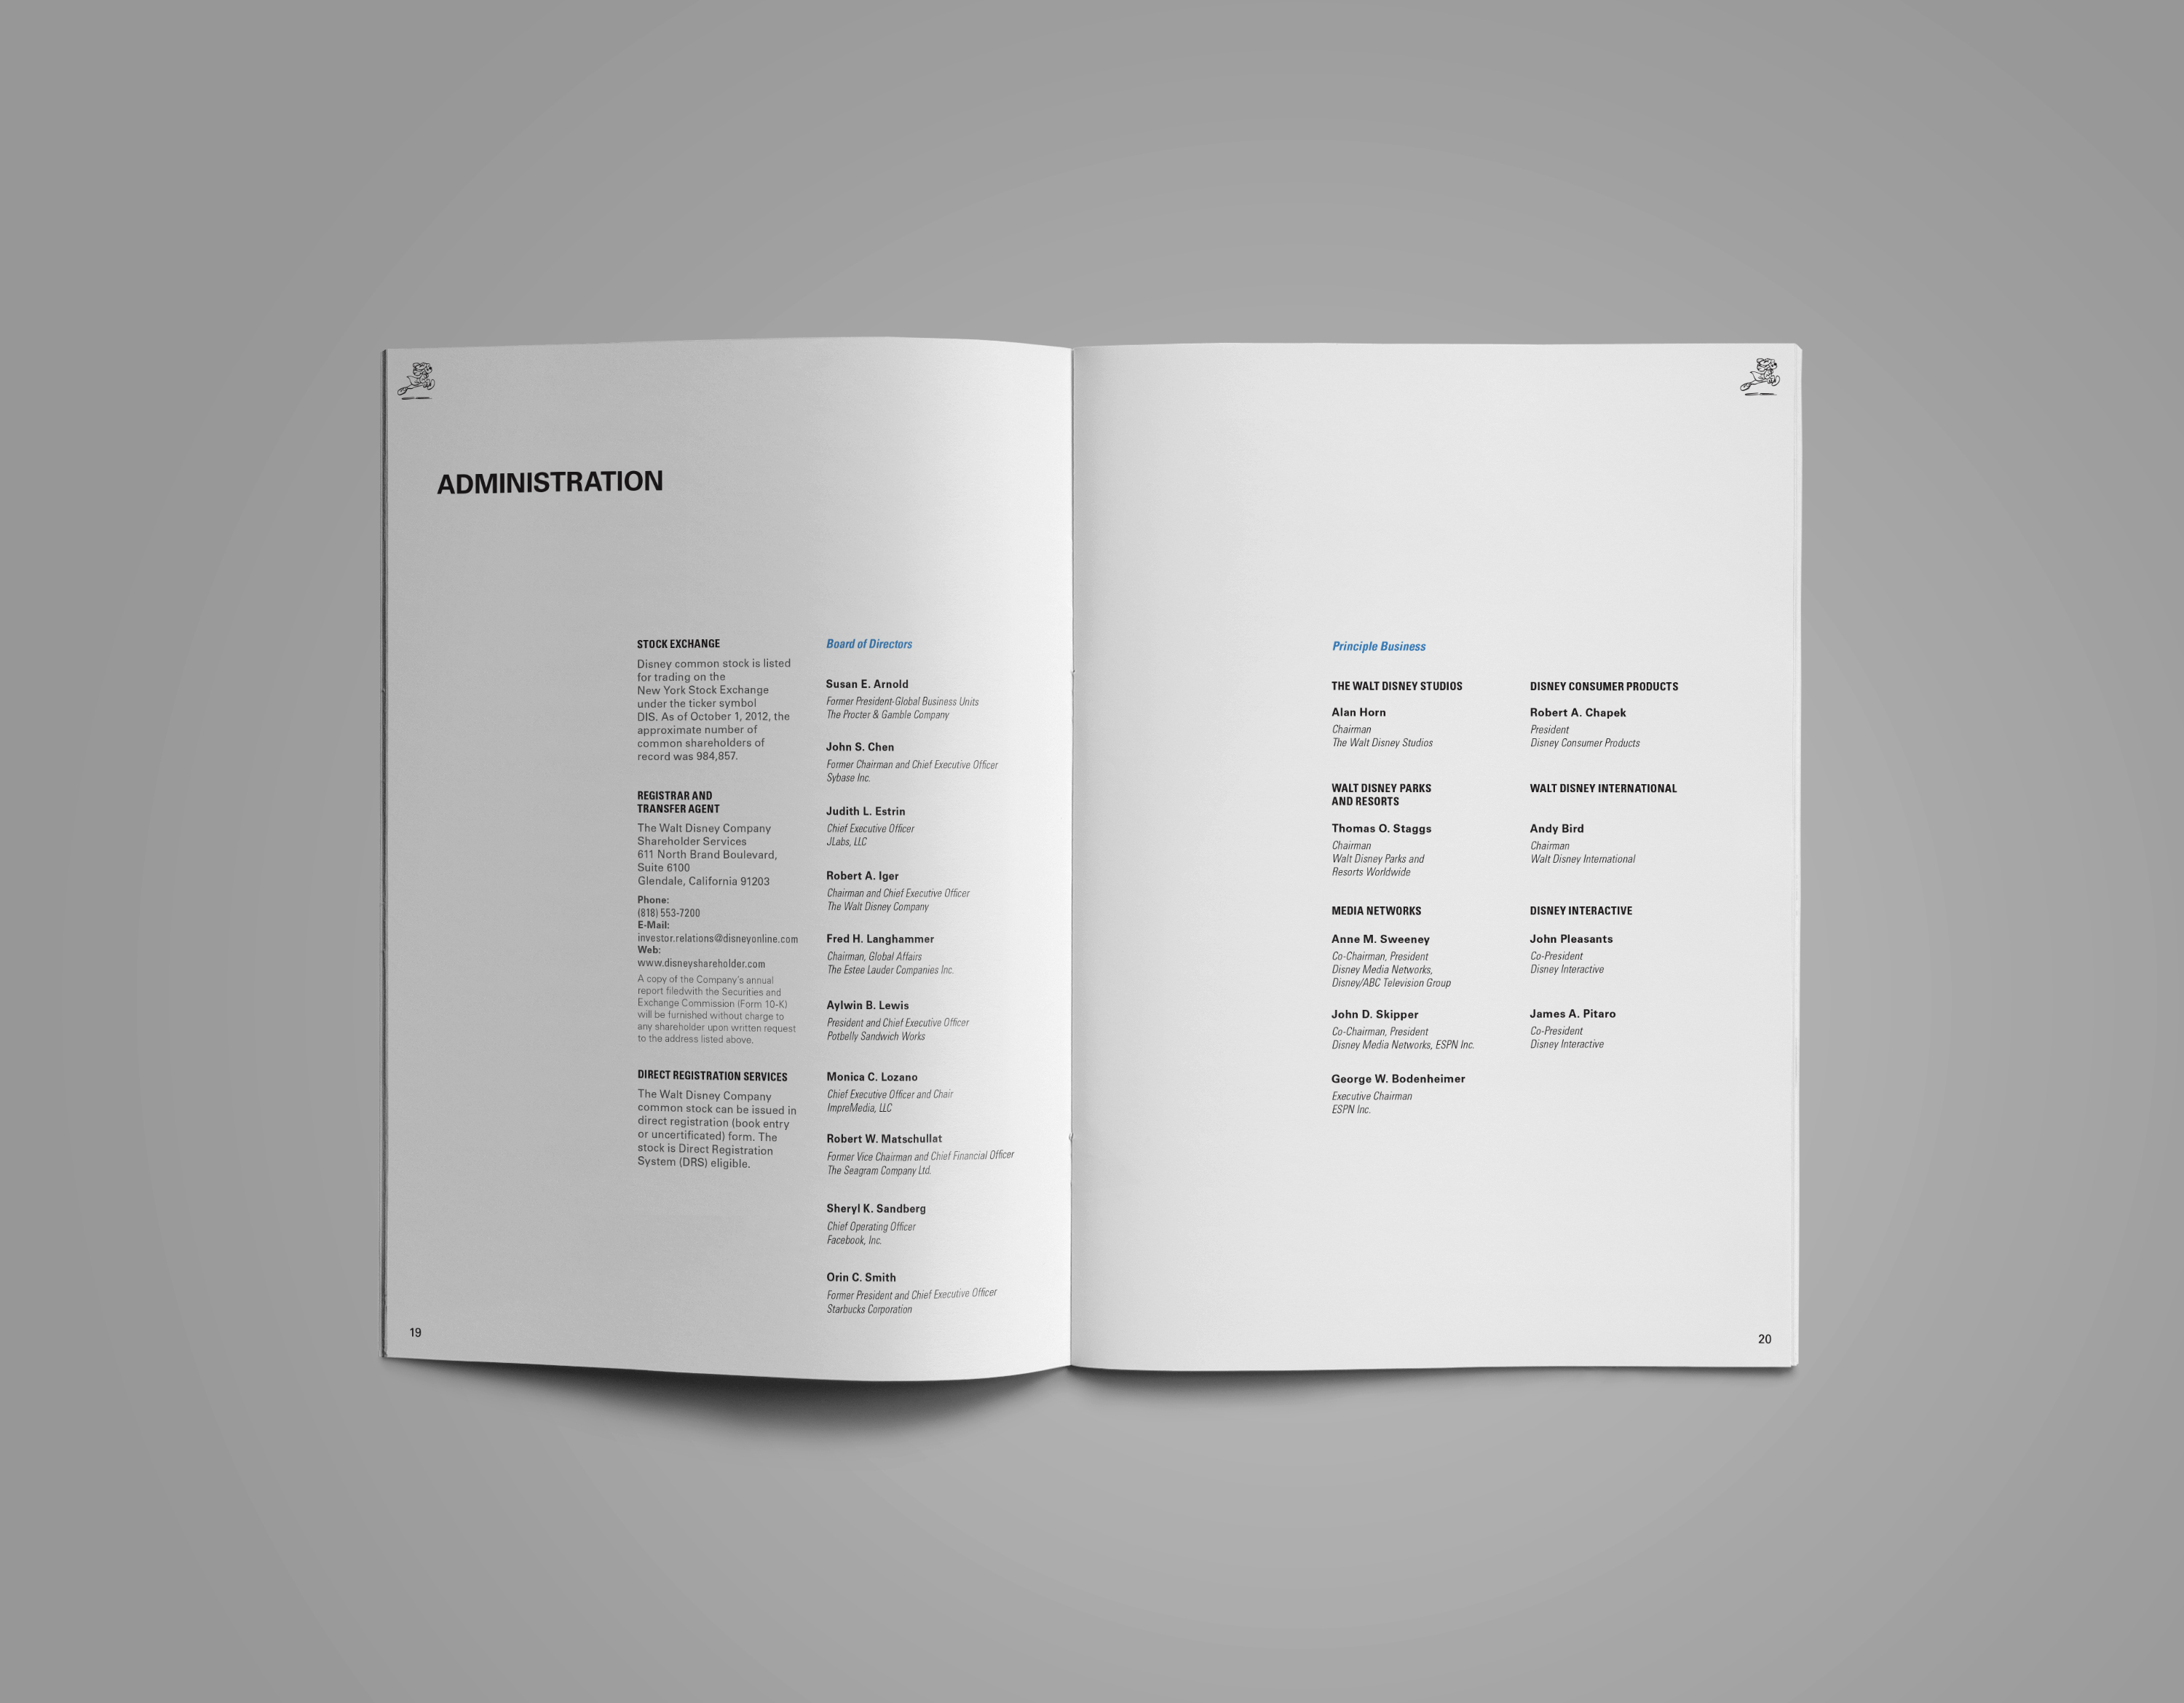 Walt disney annual report redesign on behance buycottarizona Choice Image